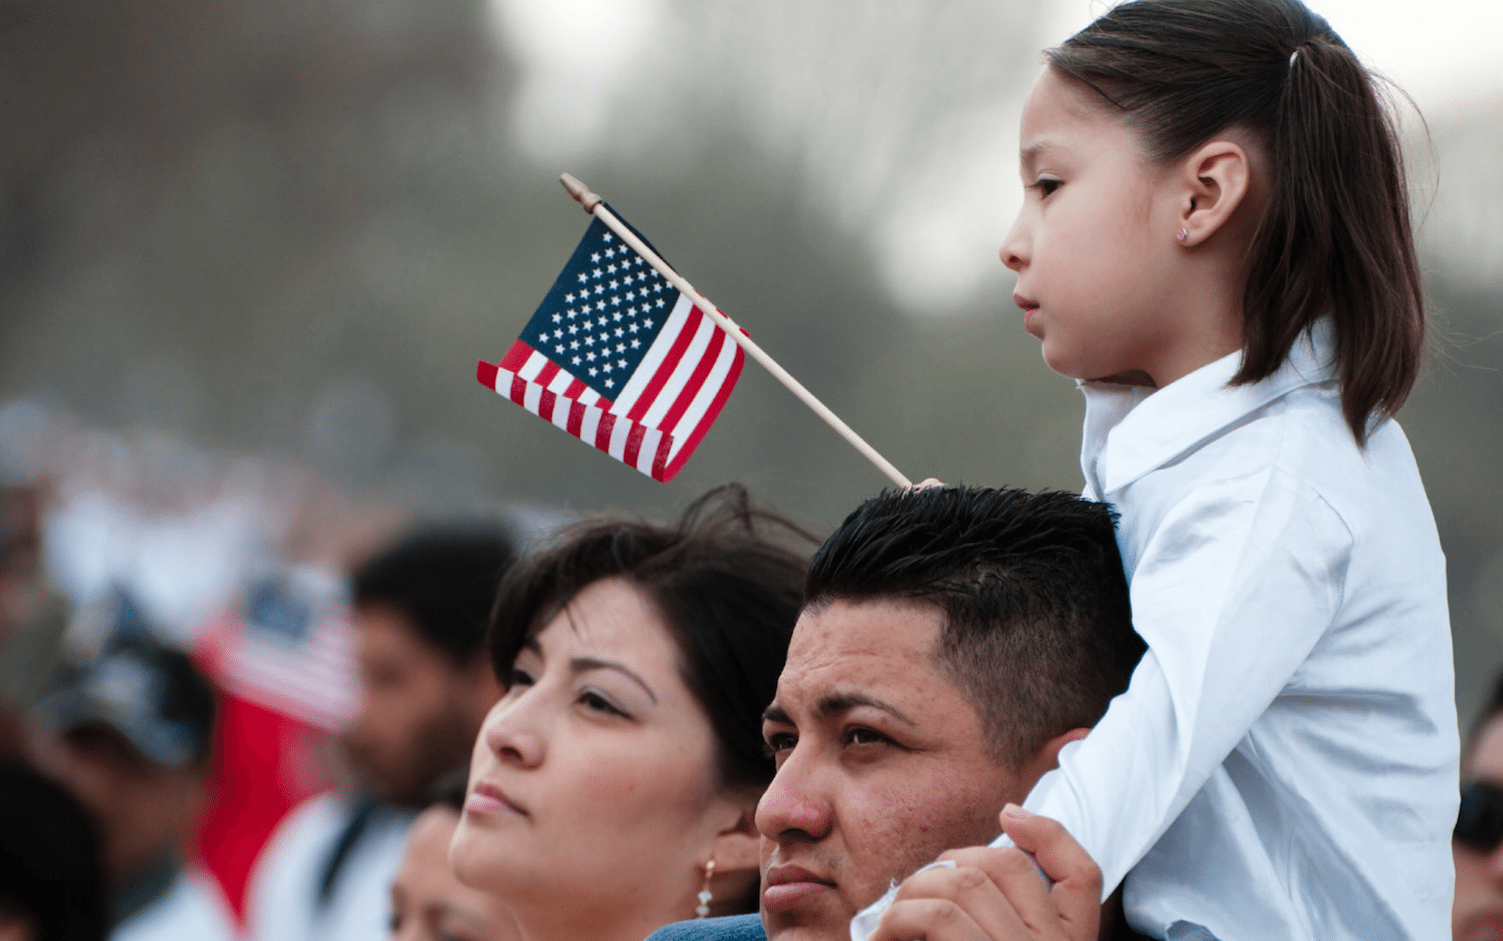 Mixte Communications ACLU in California has a long history of protecting and promoting civil liberties, including free speech, immigrant rights, LGBT rights and reproductive ...